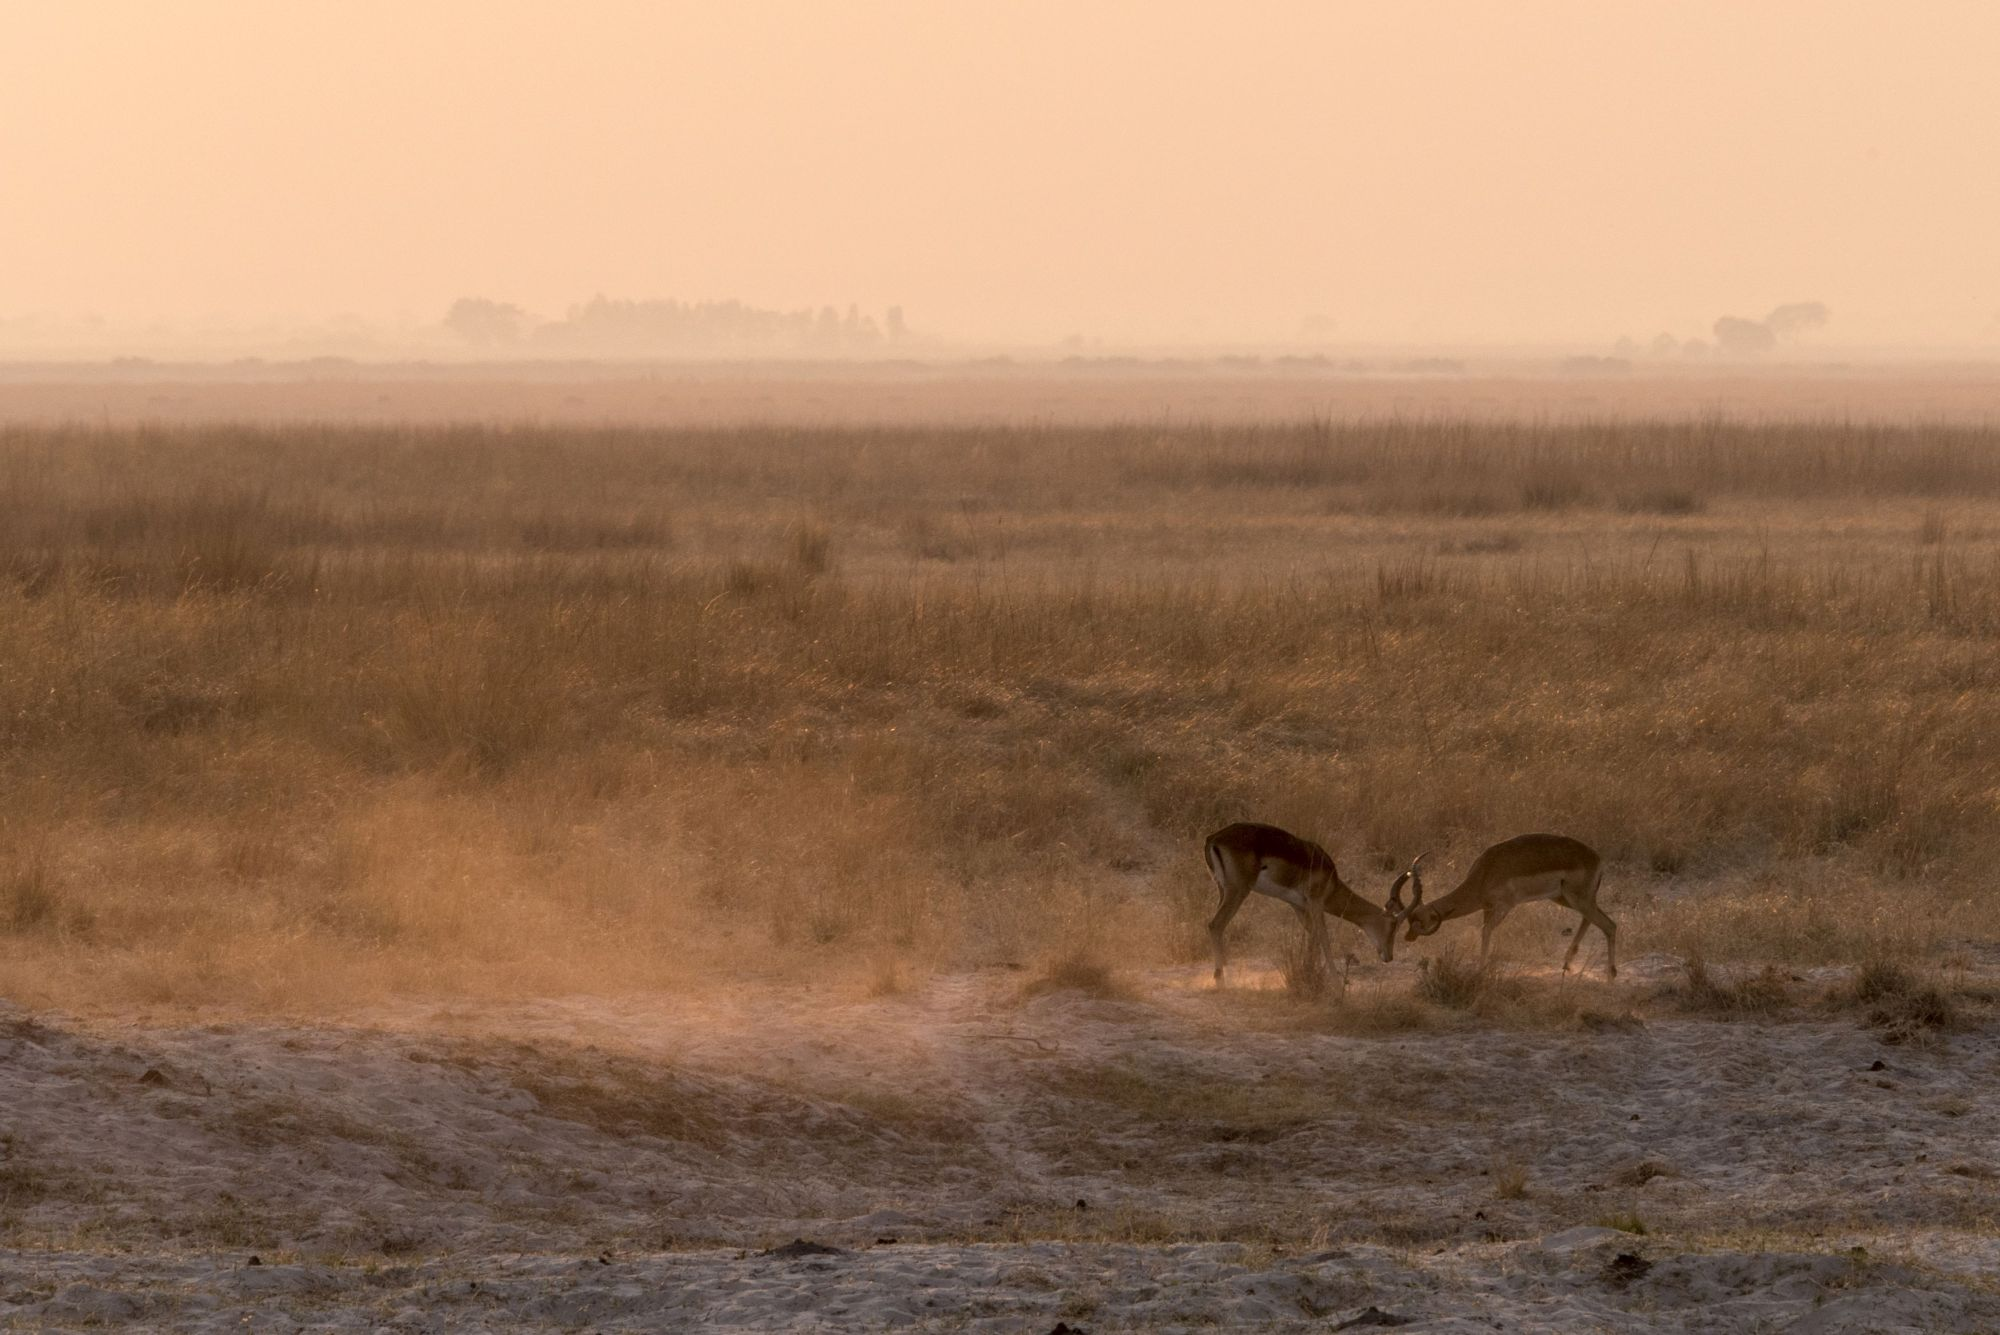 Antelope fighting at dawn (Sarah Marshall/PA)